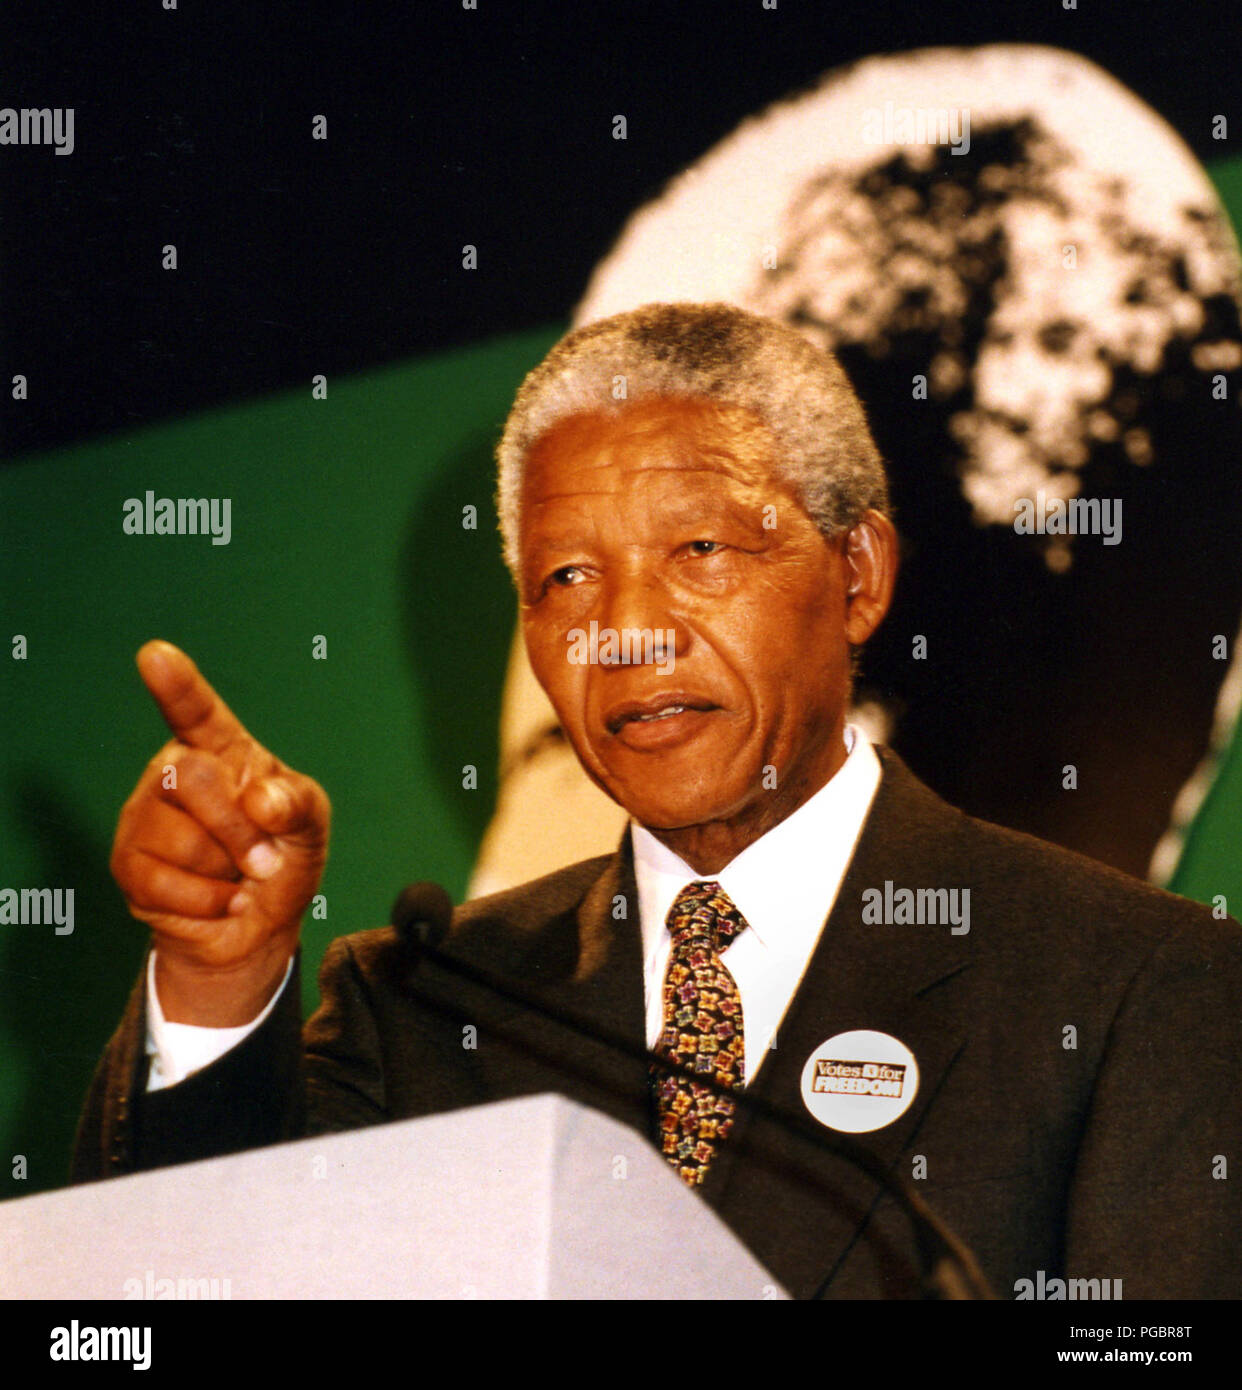 Nelson Mandela speaking in Glasgow's City Chambers after he received The Freedom of the City at a ceremony in October 1993. - Stock Image